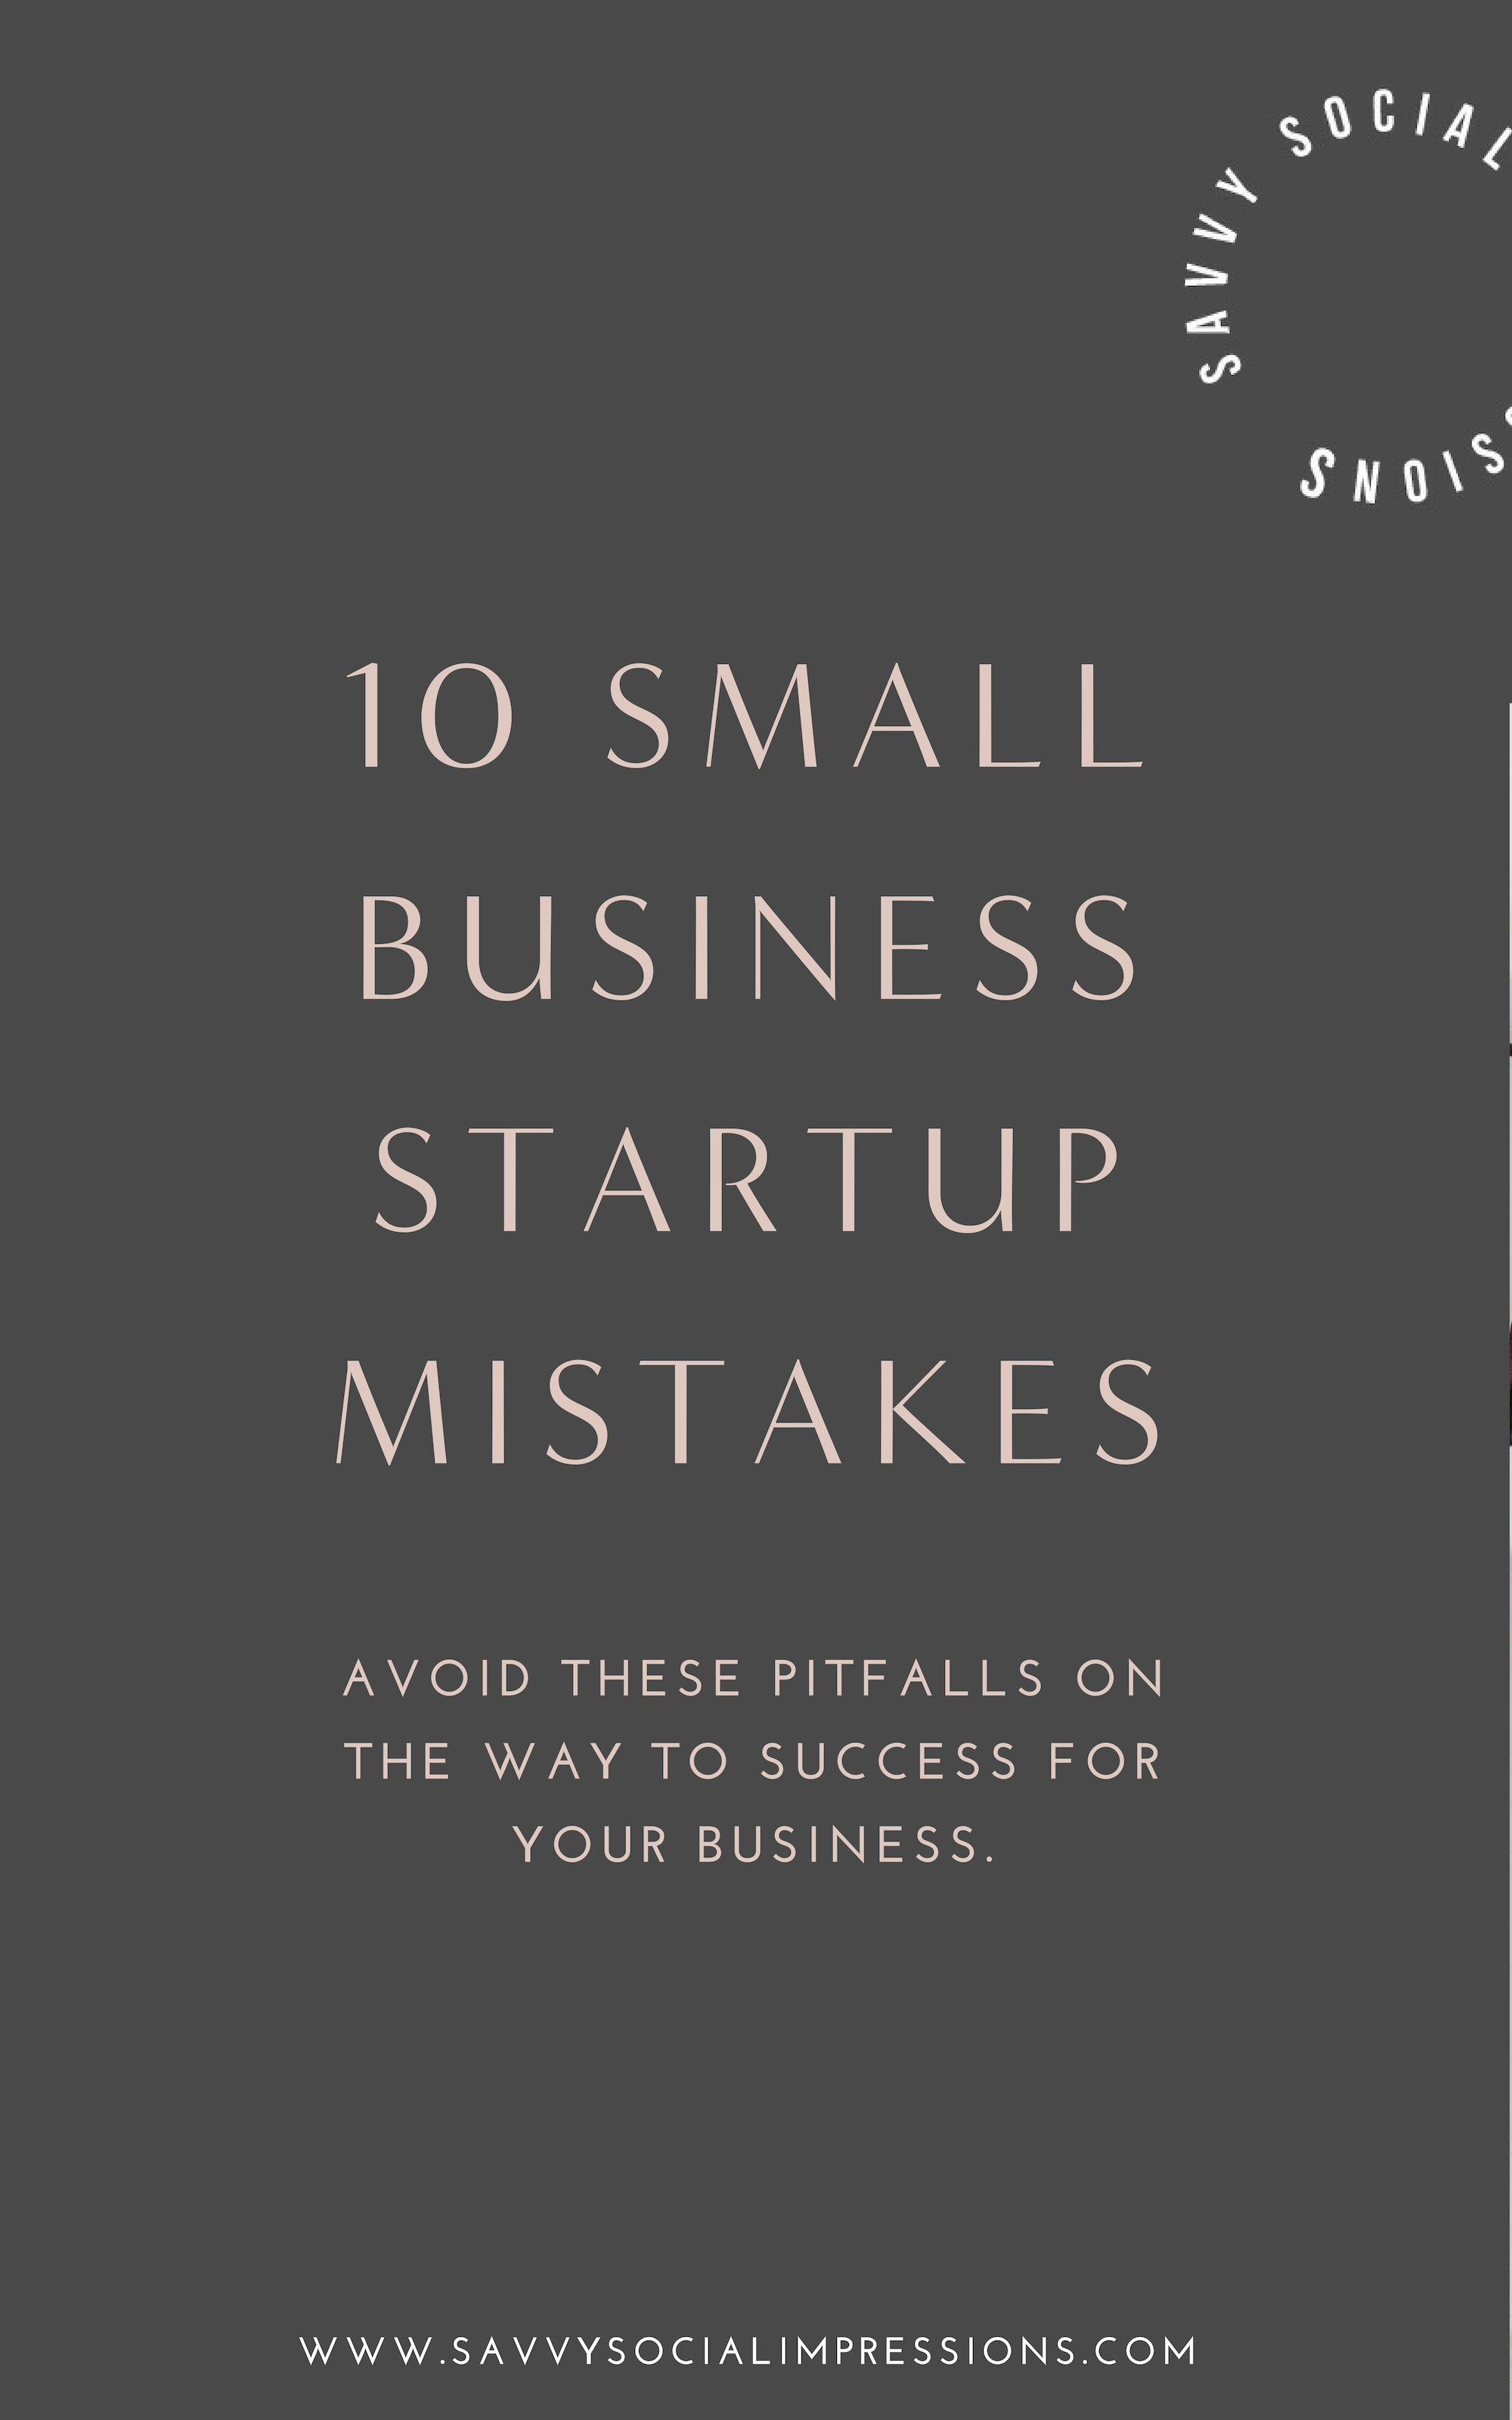 10 Small Business Startup Mistakes.png